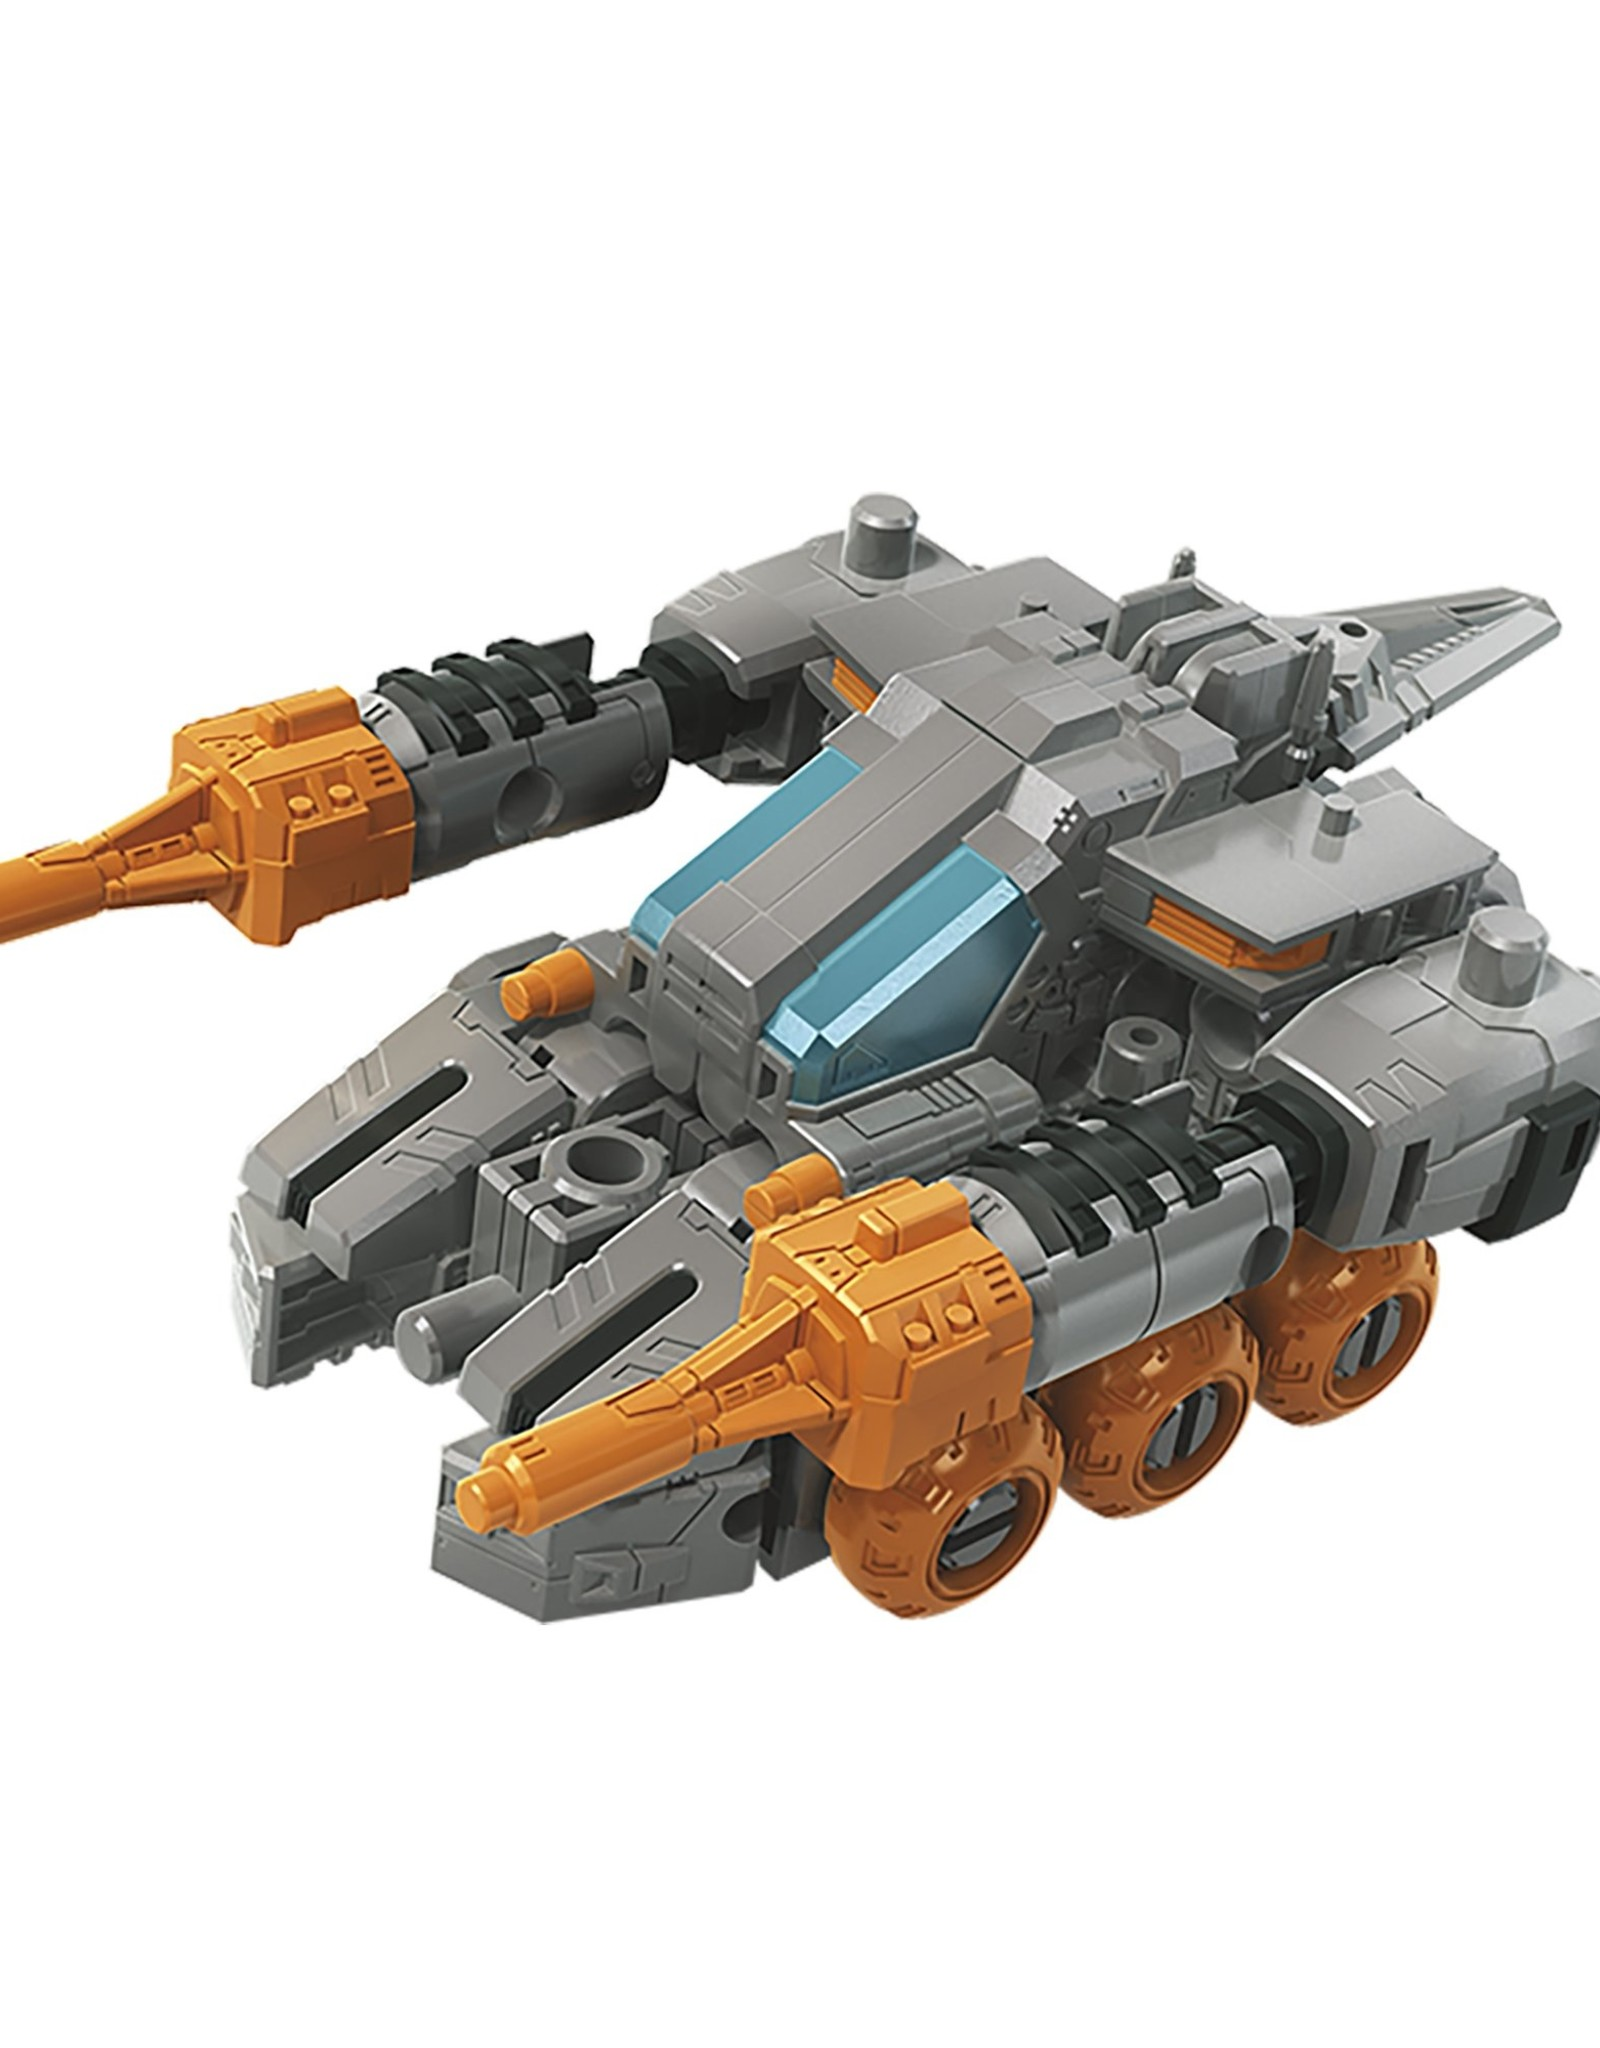 HASBRO Transformers Generations War for Cybertron Deluxe WFC-E35 Decepticon Fasttrack Figure